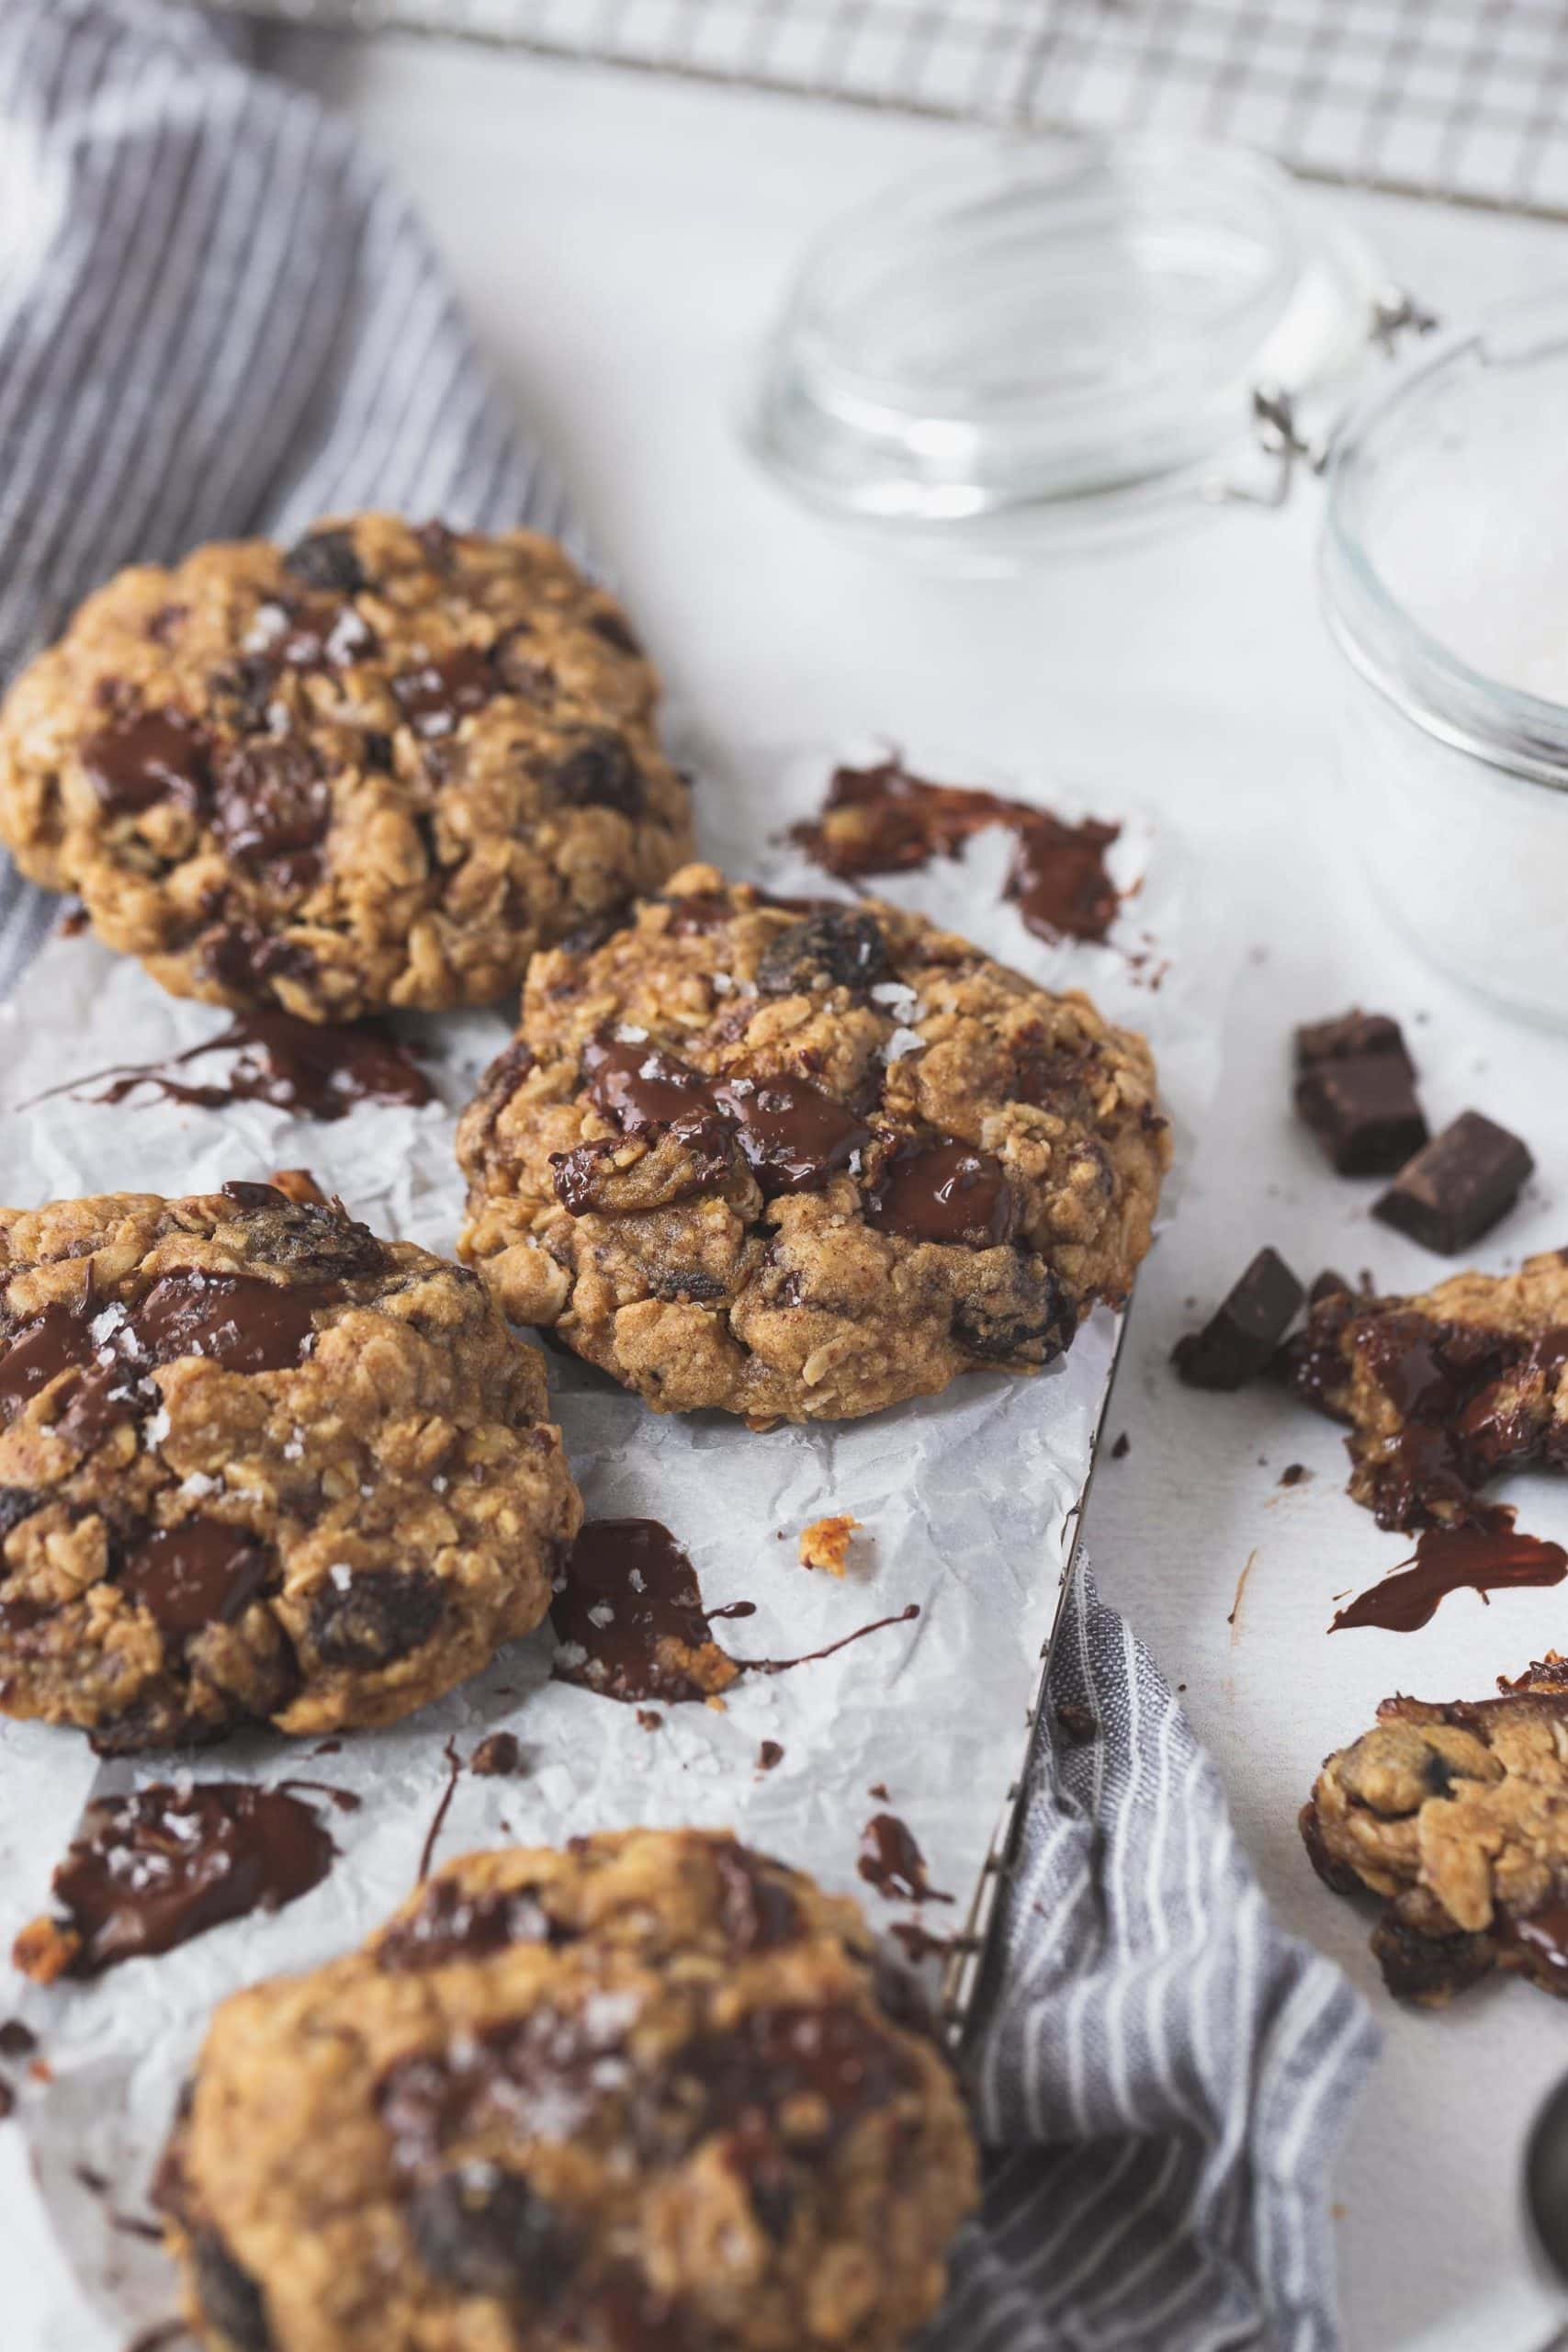 Oatmeal raisin chocolate chip cookies. There are raisins and chocolate chunks in and around the cookies.